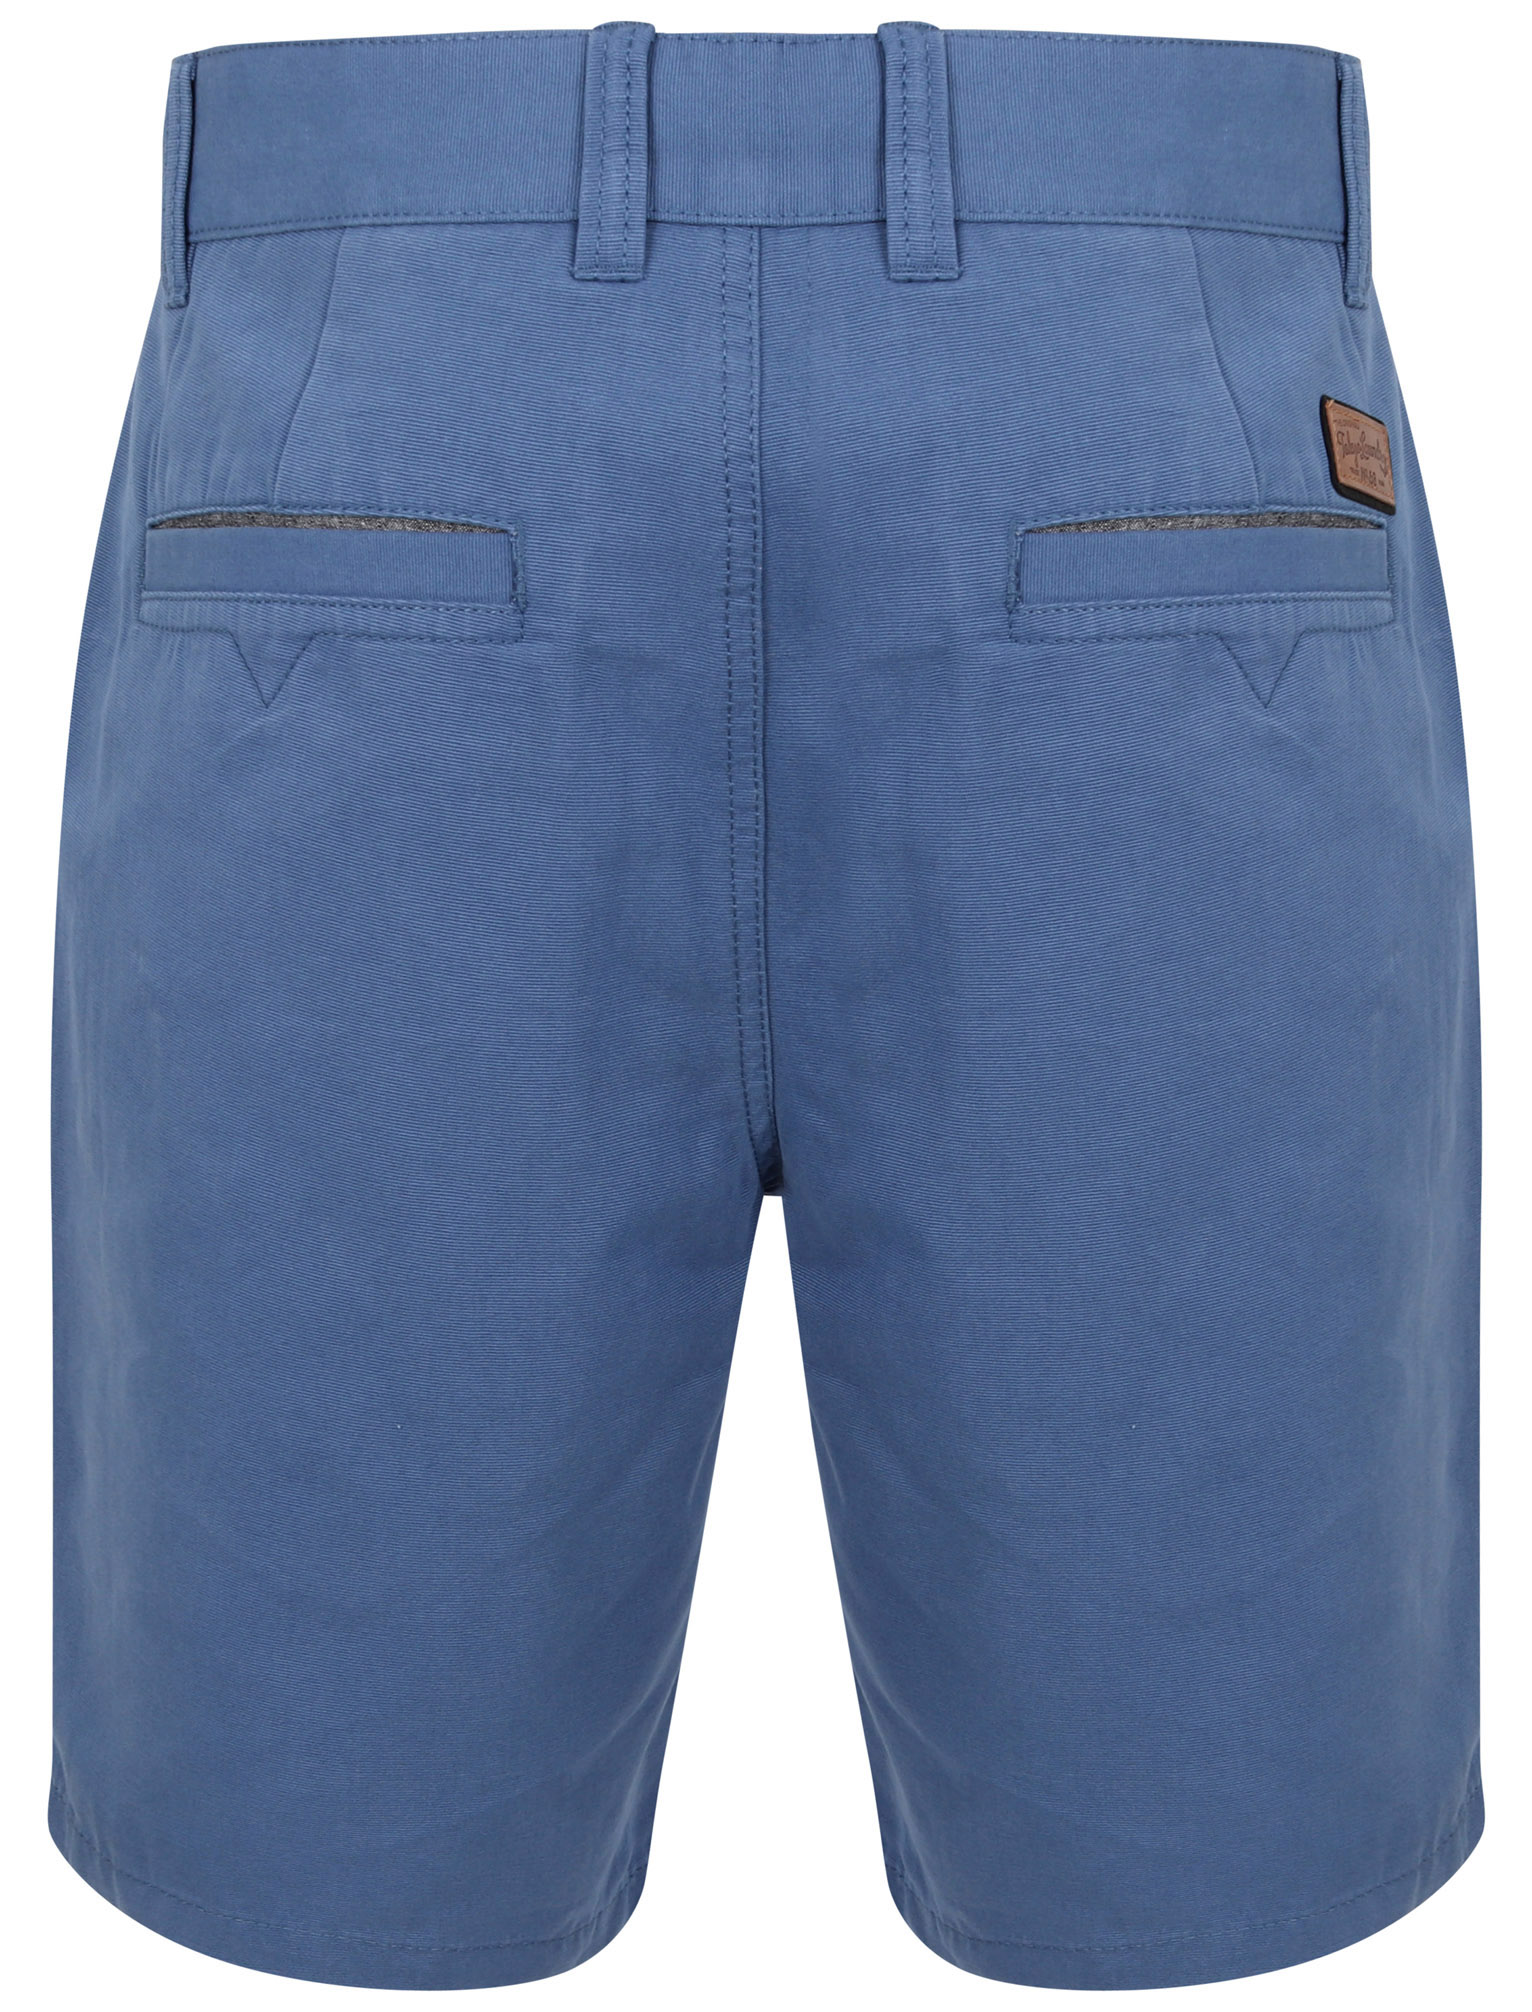 Tokyo-Laundry-Men-039-s-Delgada-Chino-Shorts-Smart-Summer-Casual-Jean-Size-S-XXL thumbnail 12